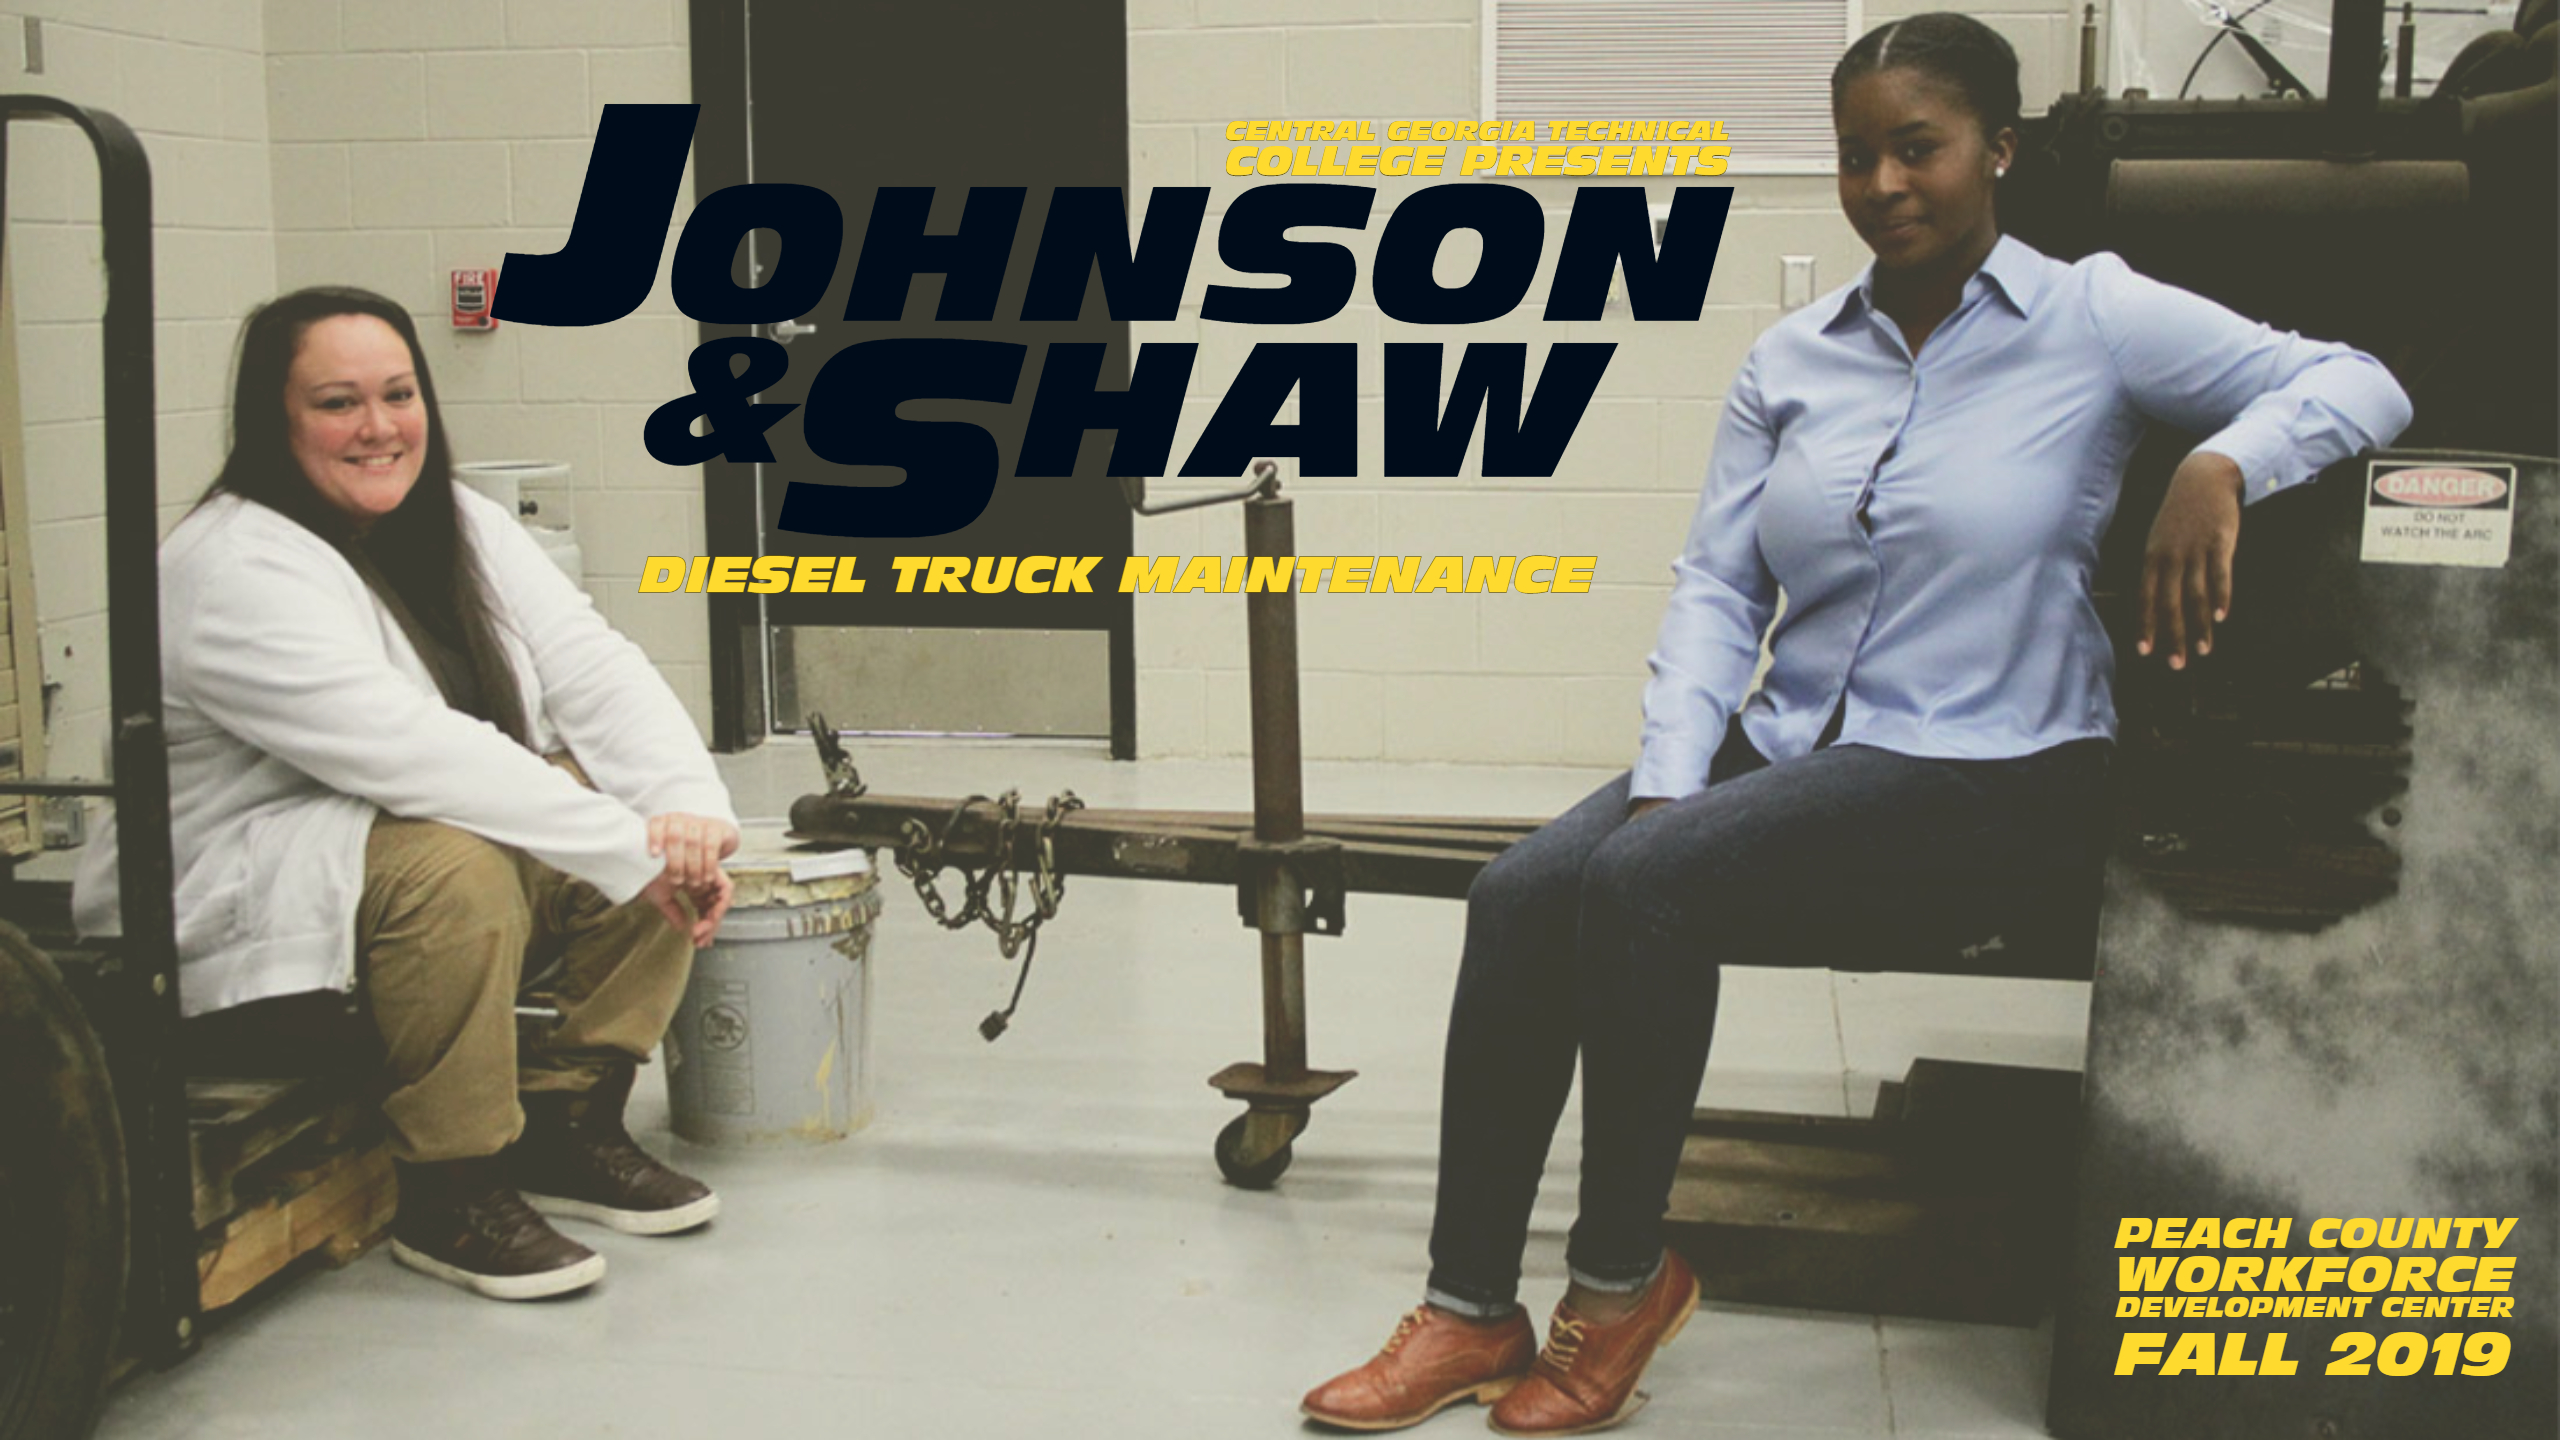 (Left to Right) Tameka Johnson and Brittany Shaw are less than one month into the Diesel Truck Maintenance program at CGTC, overcoming outside expectations for females and facing challenges head-on.